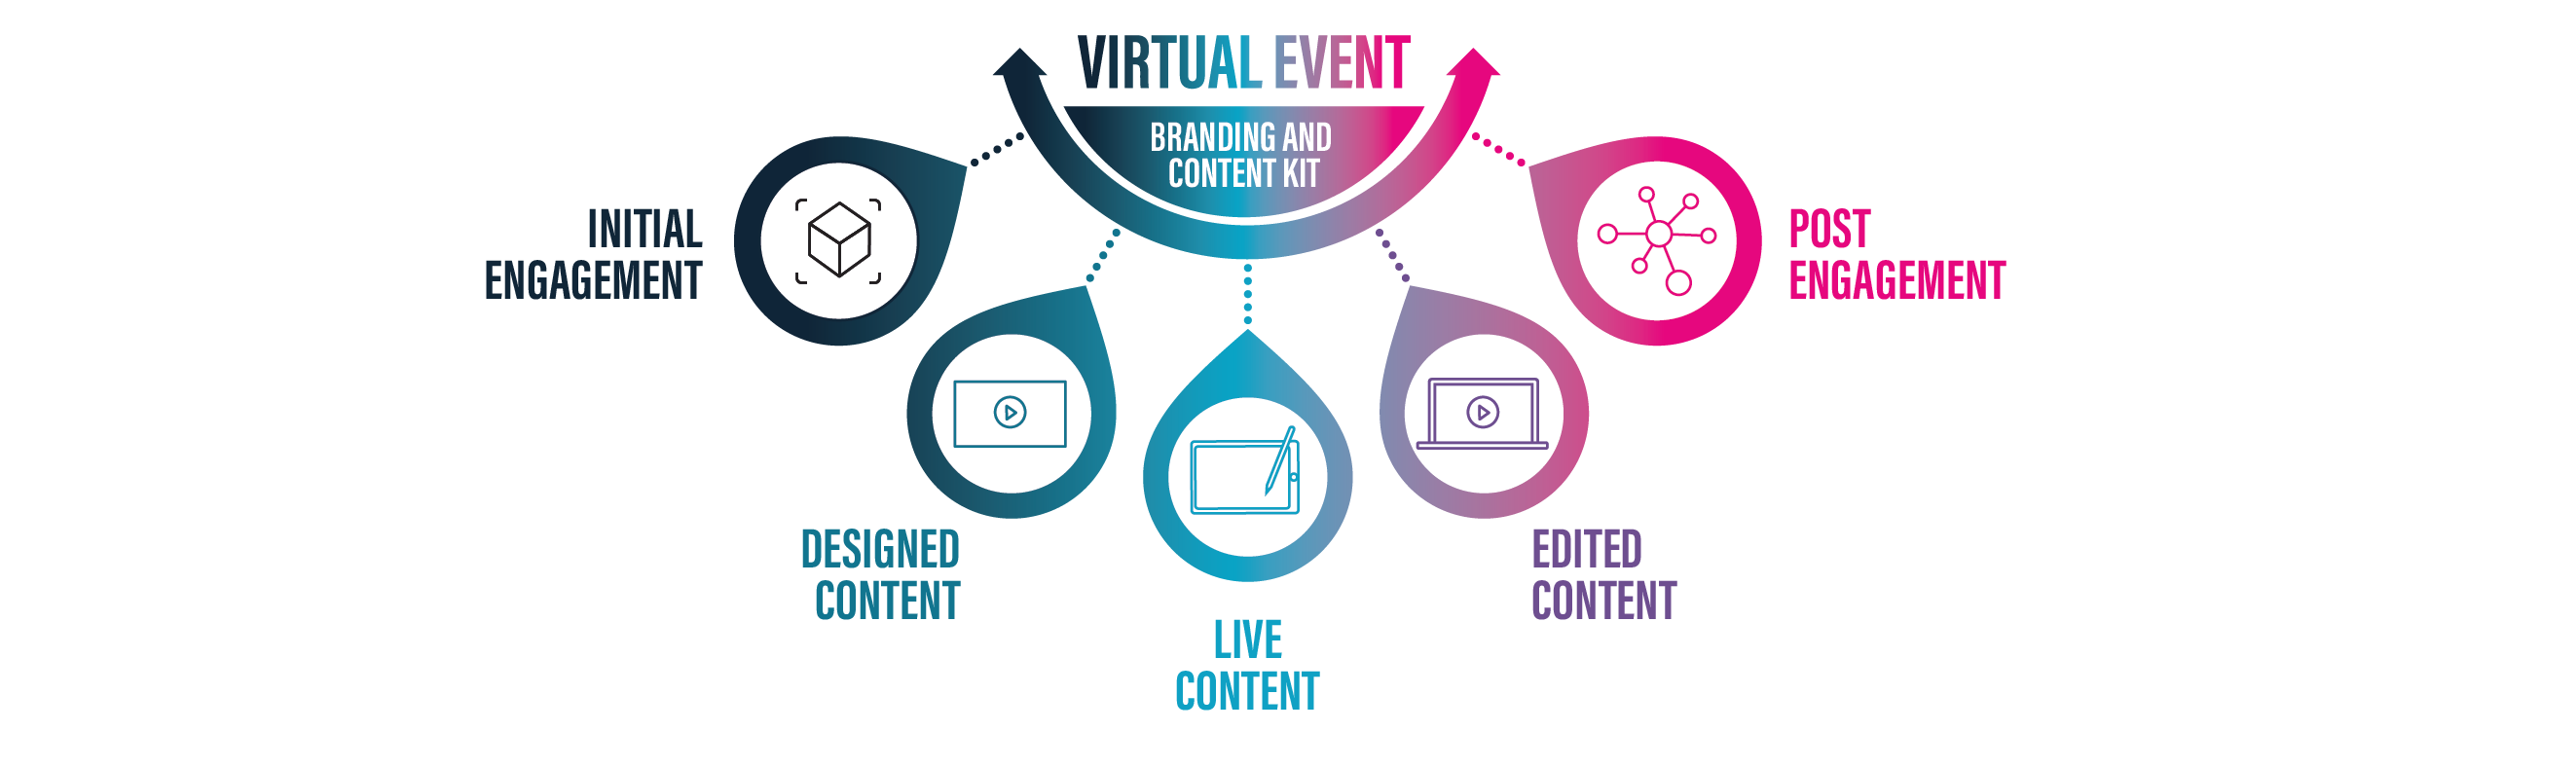 Virtual event branding kit